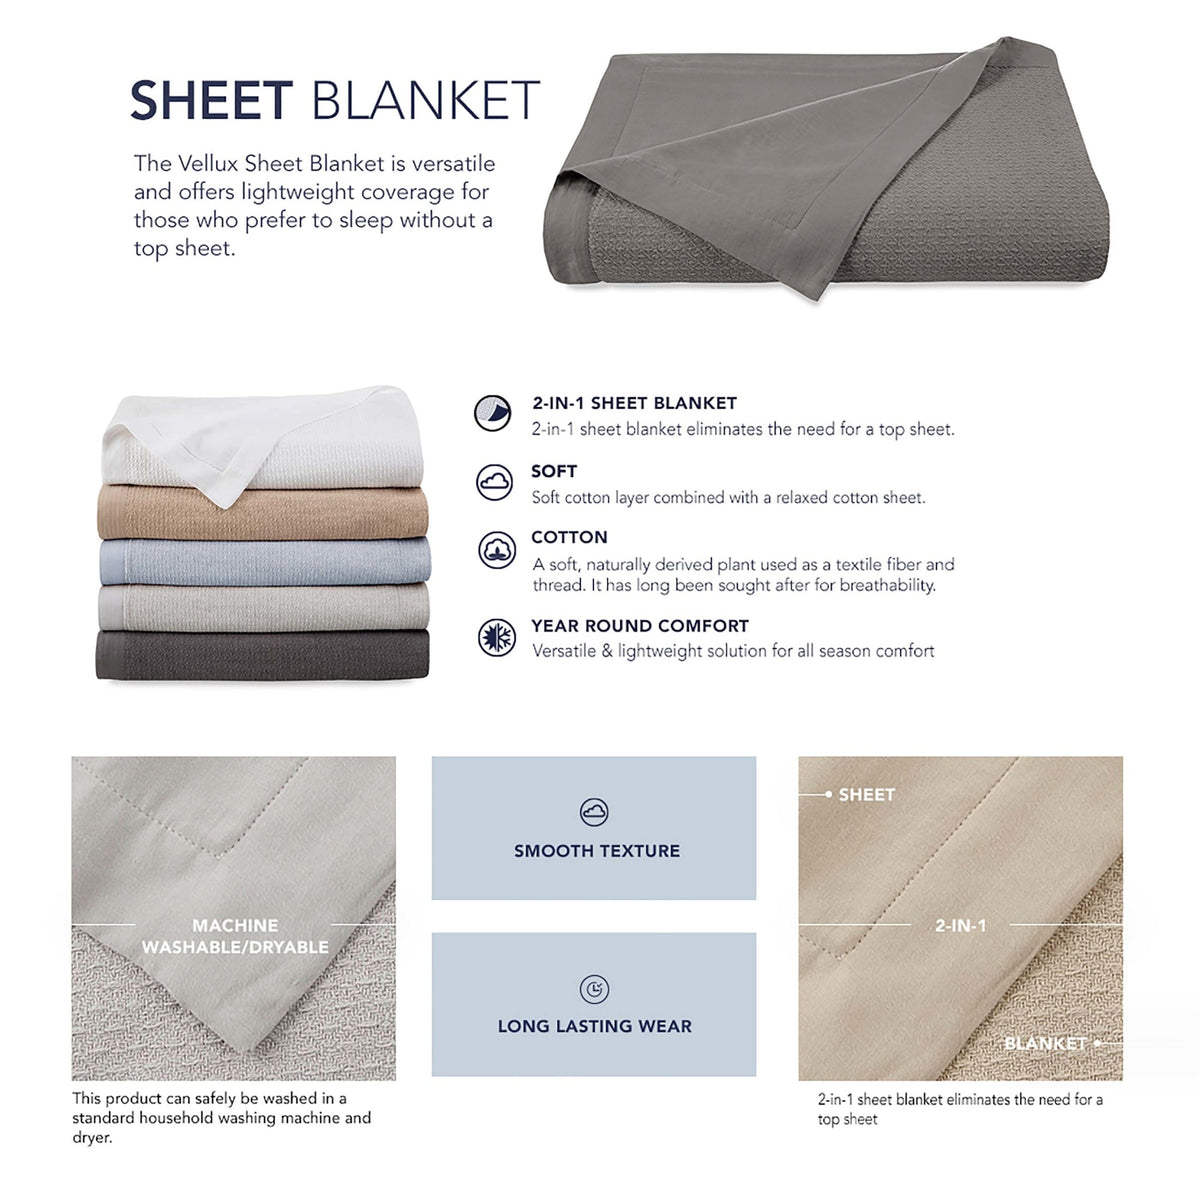 Vellux Sheet Blanket